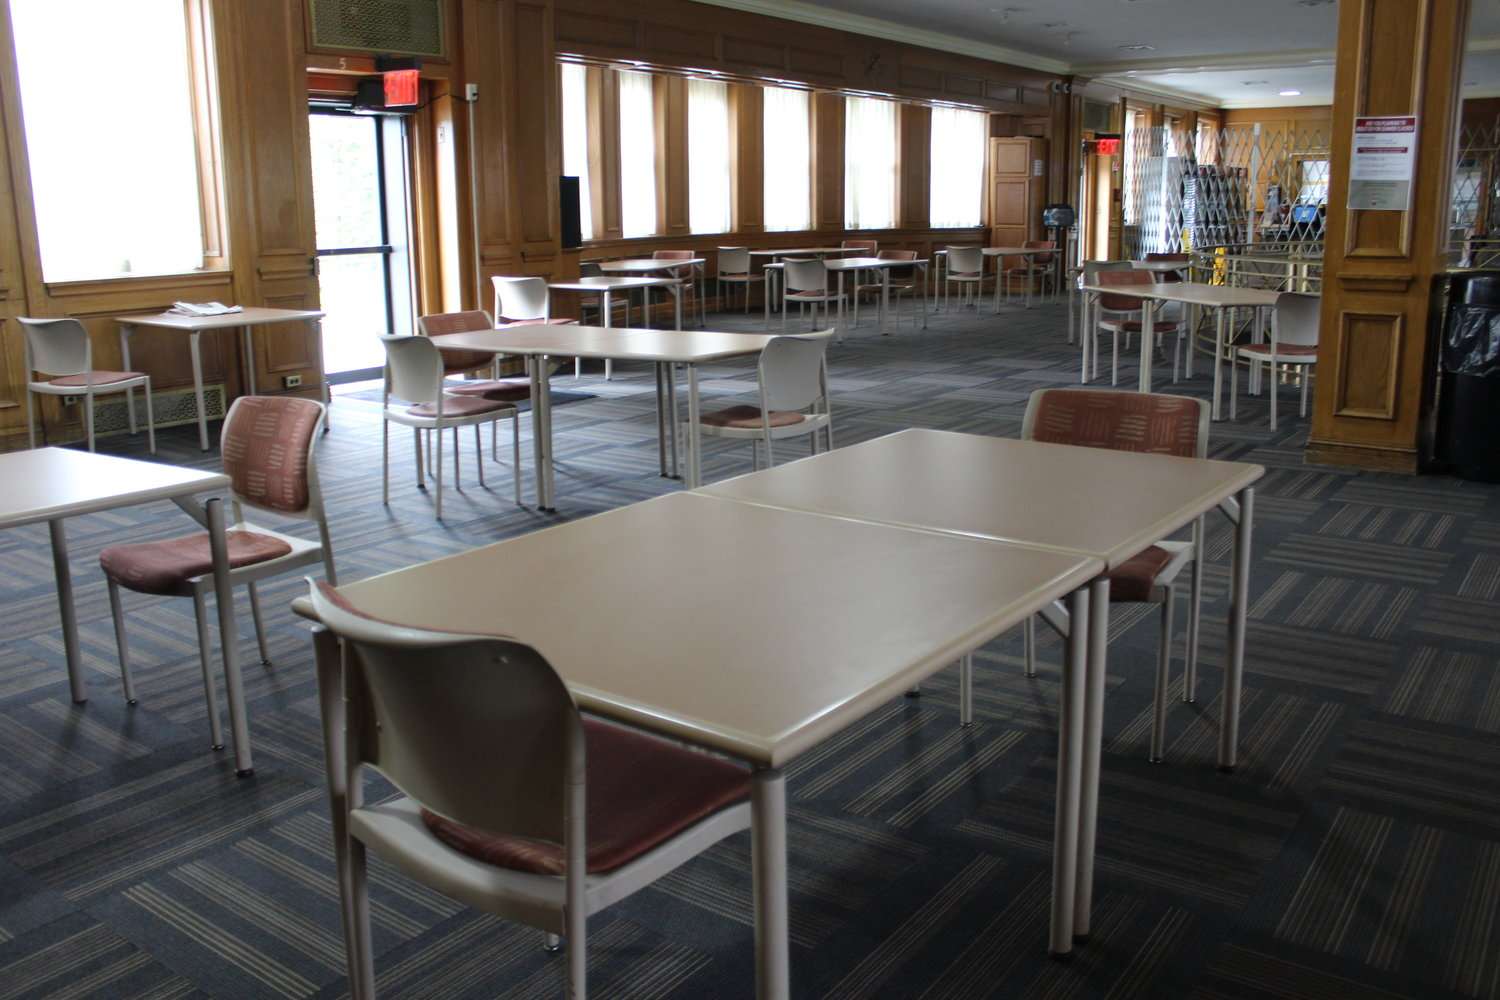 Tables in the college's cafeteria will have fewer chairs to maintain social distancing.